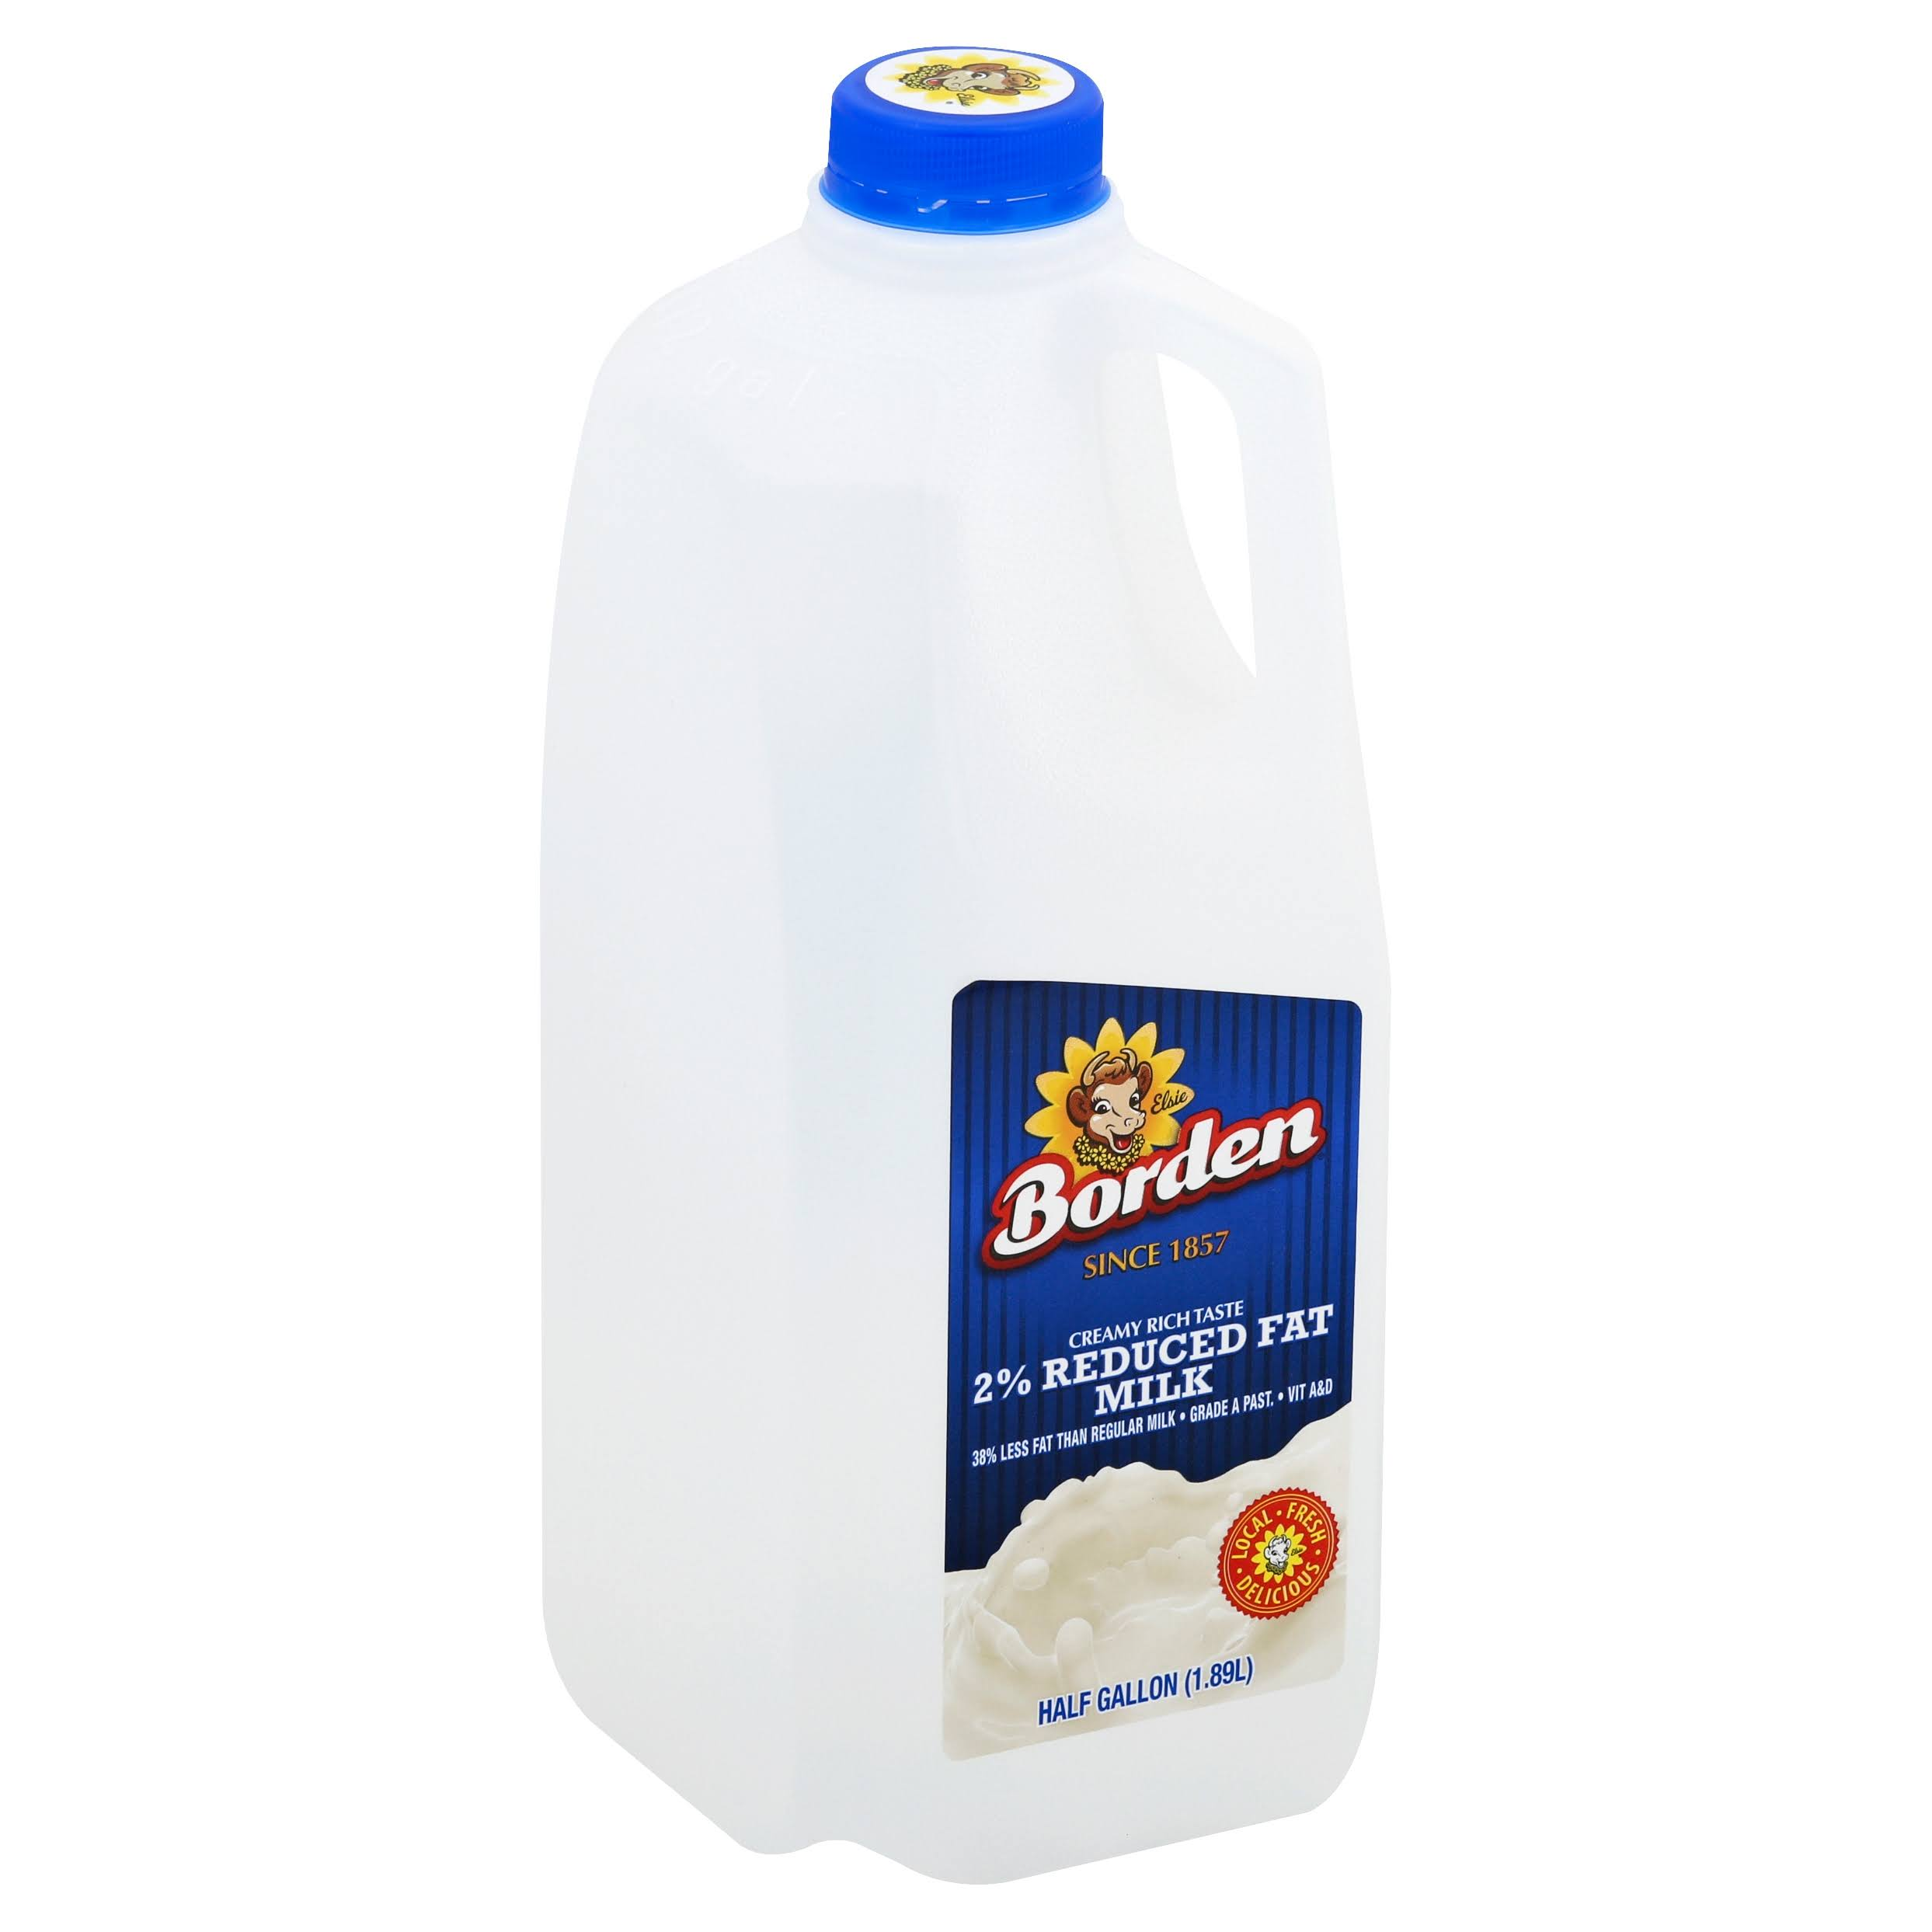 Borden Milk Reduced Fat